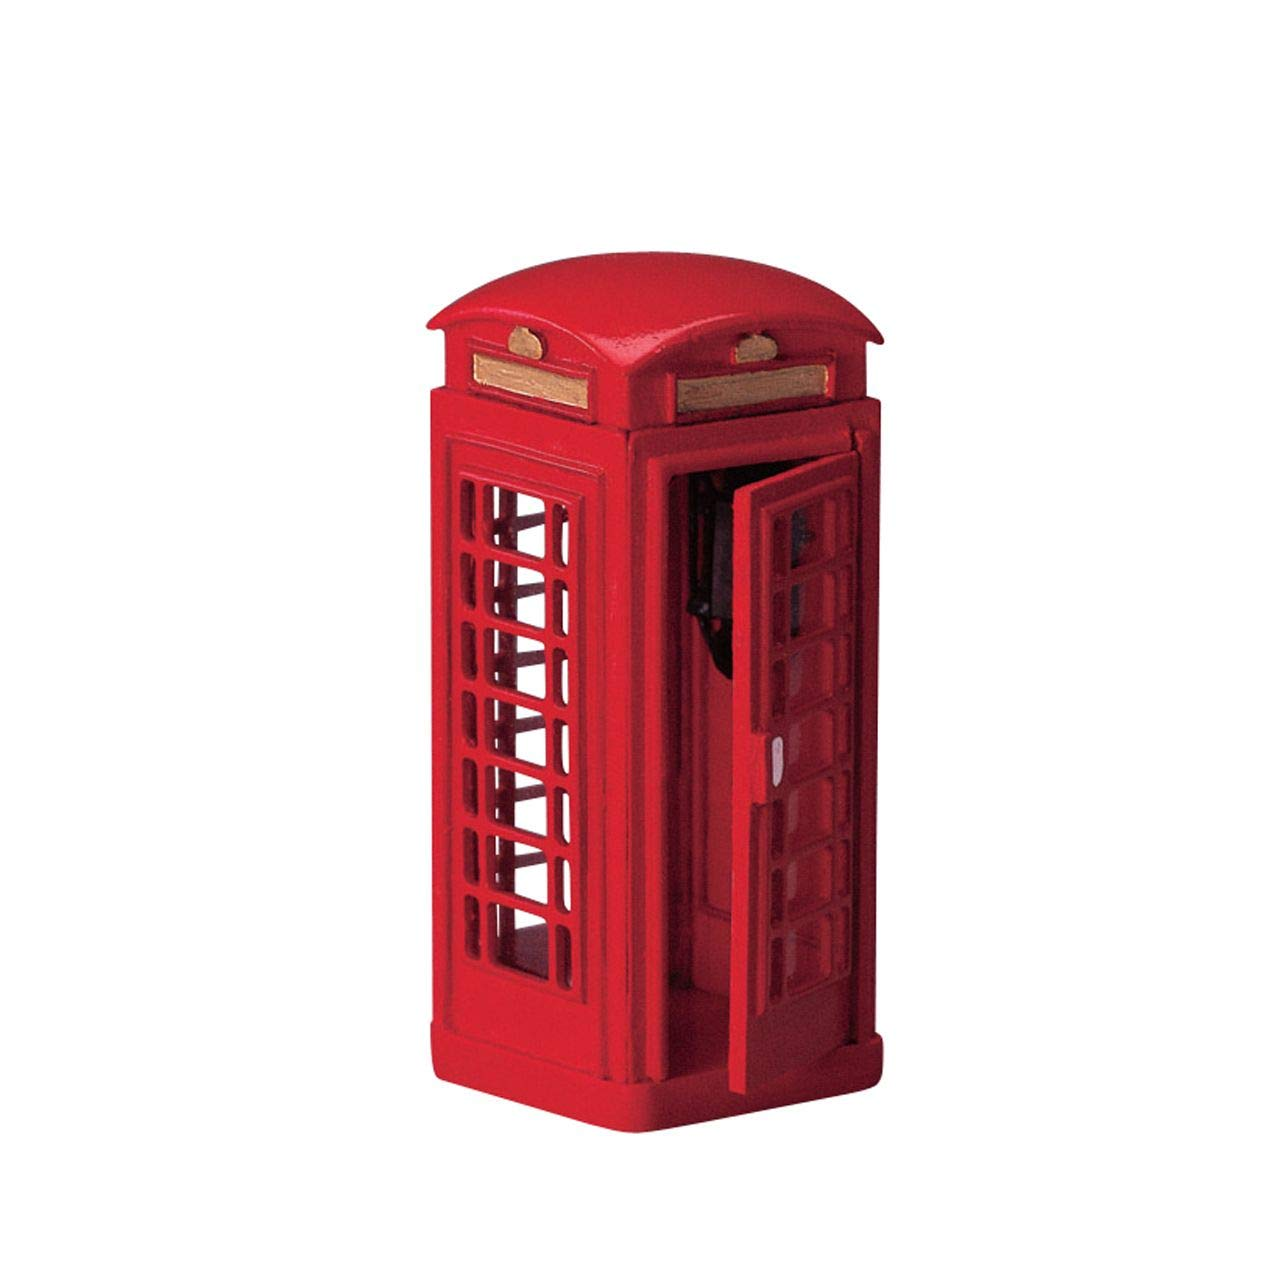 Lemax Village Collection Red Telephone Booth Accessory Figurine (44176)